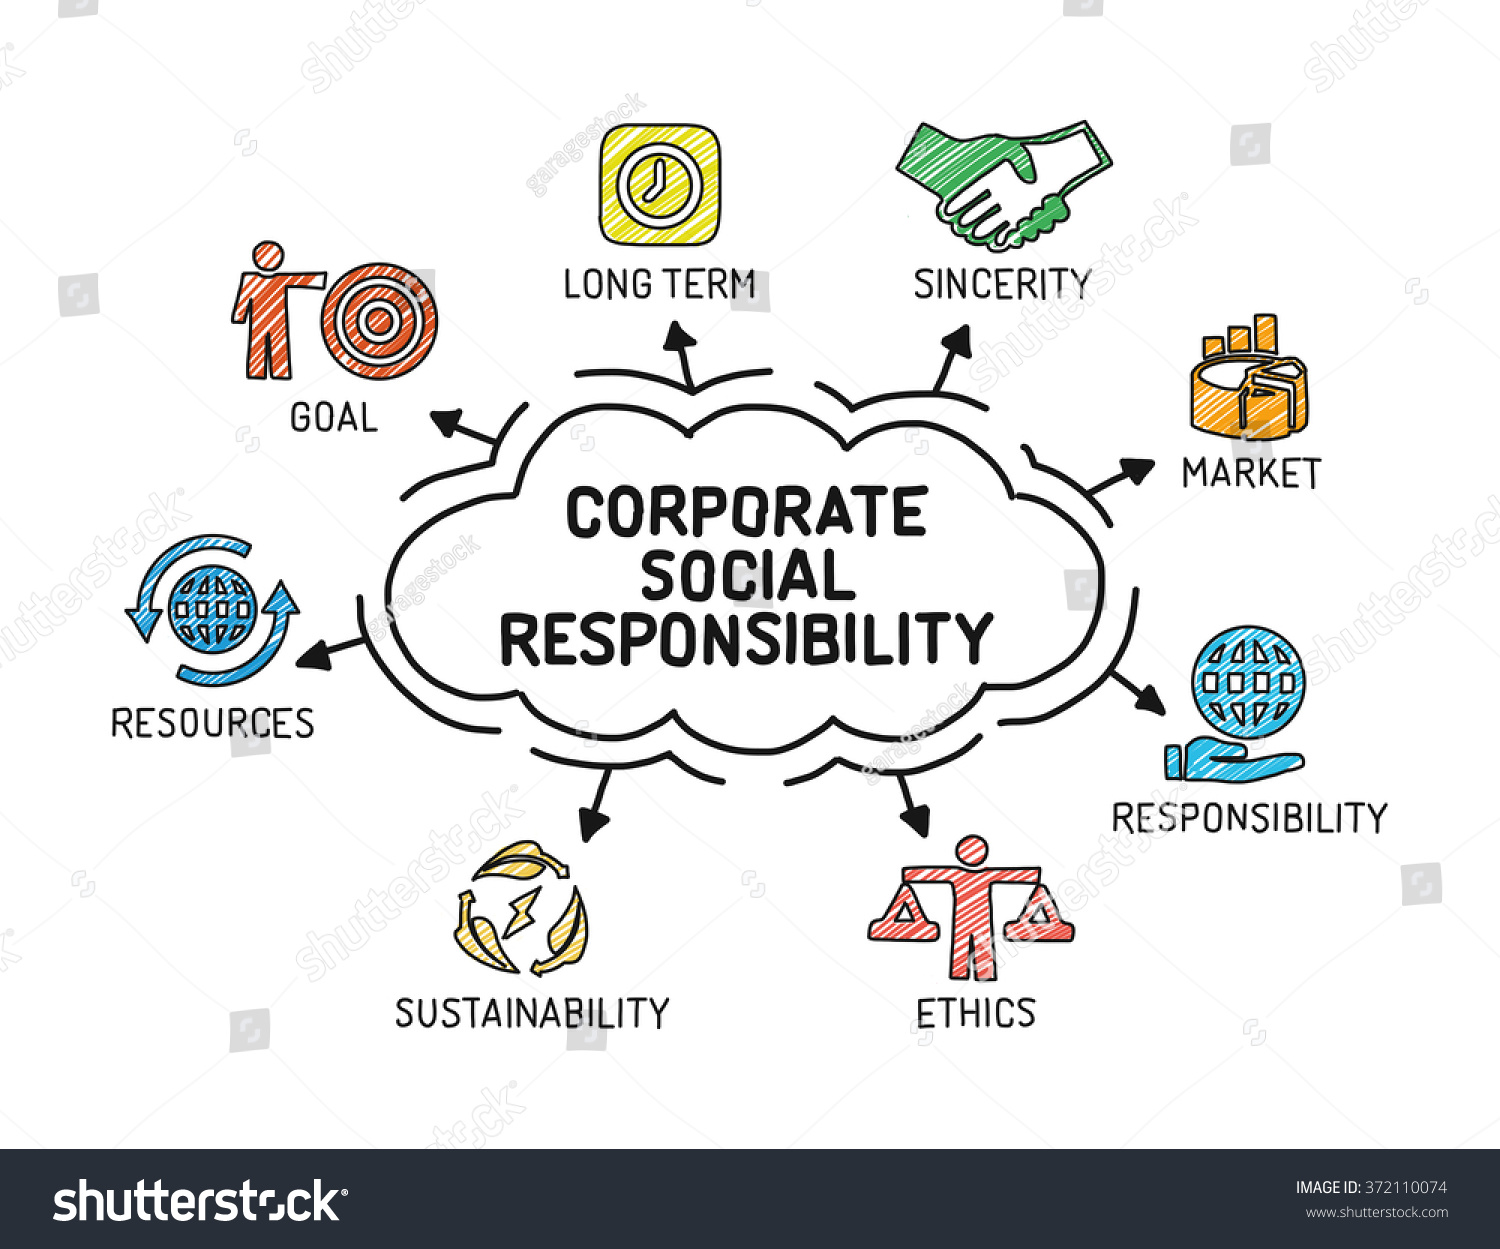 corporate social responsibility sprit The reasons why law firms commit to corporate social responsibility vary, but what the best initiatives share is a focus on results joanna goodman reports corporate social responsibility (csr .